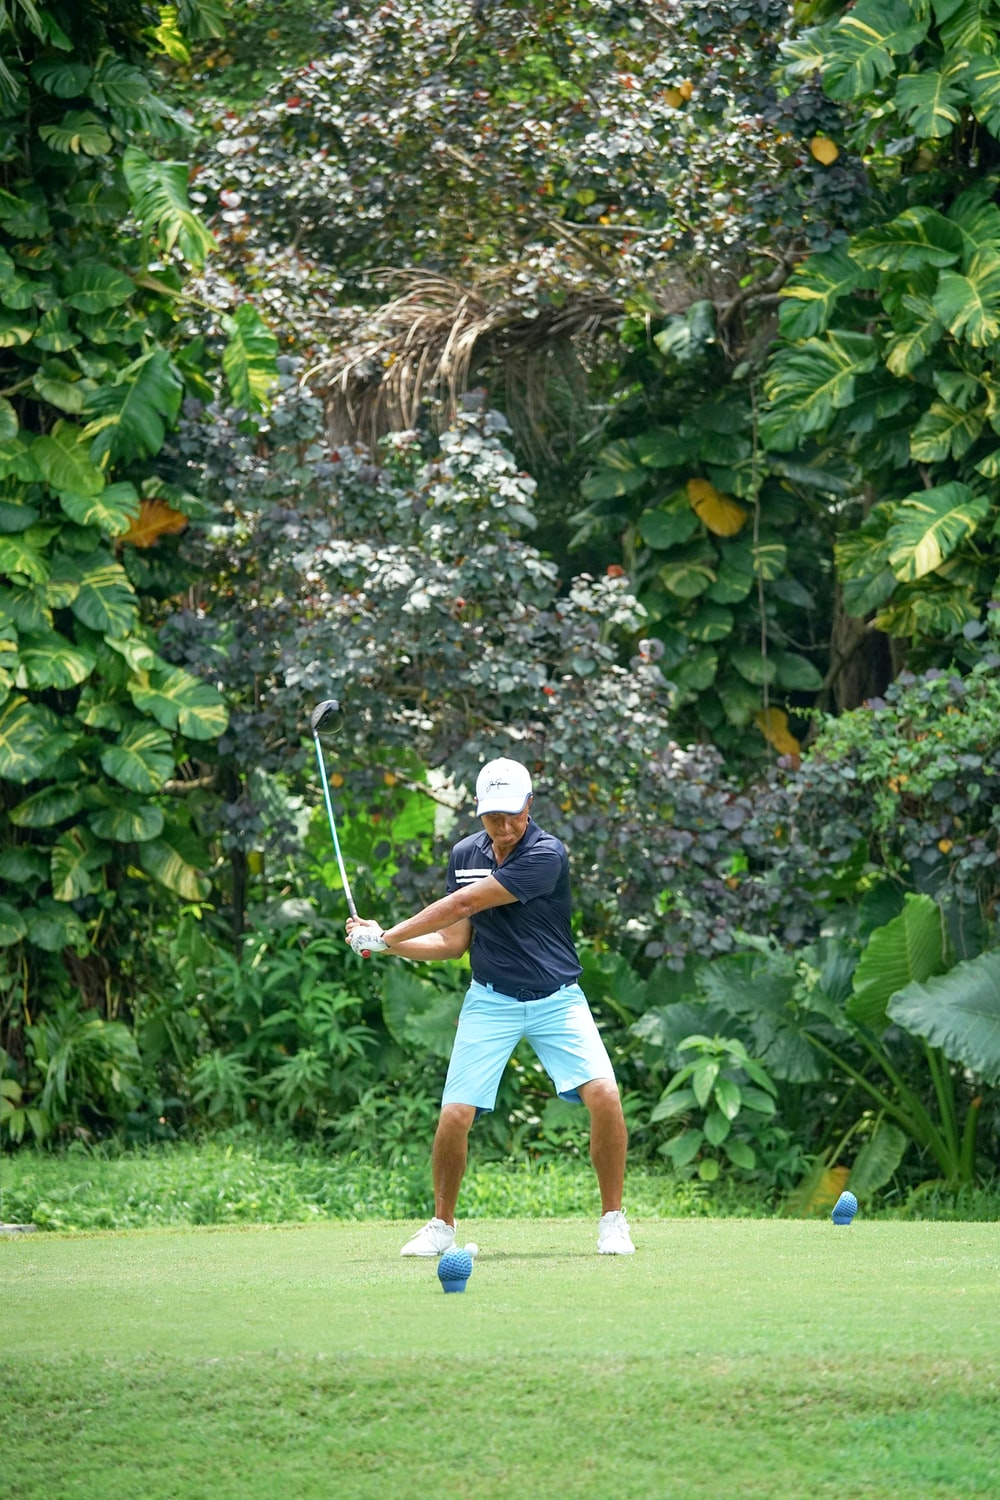 man in blue shirt and brown shorts playing golf during daytime